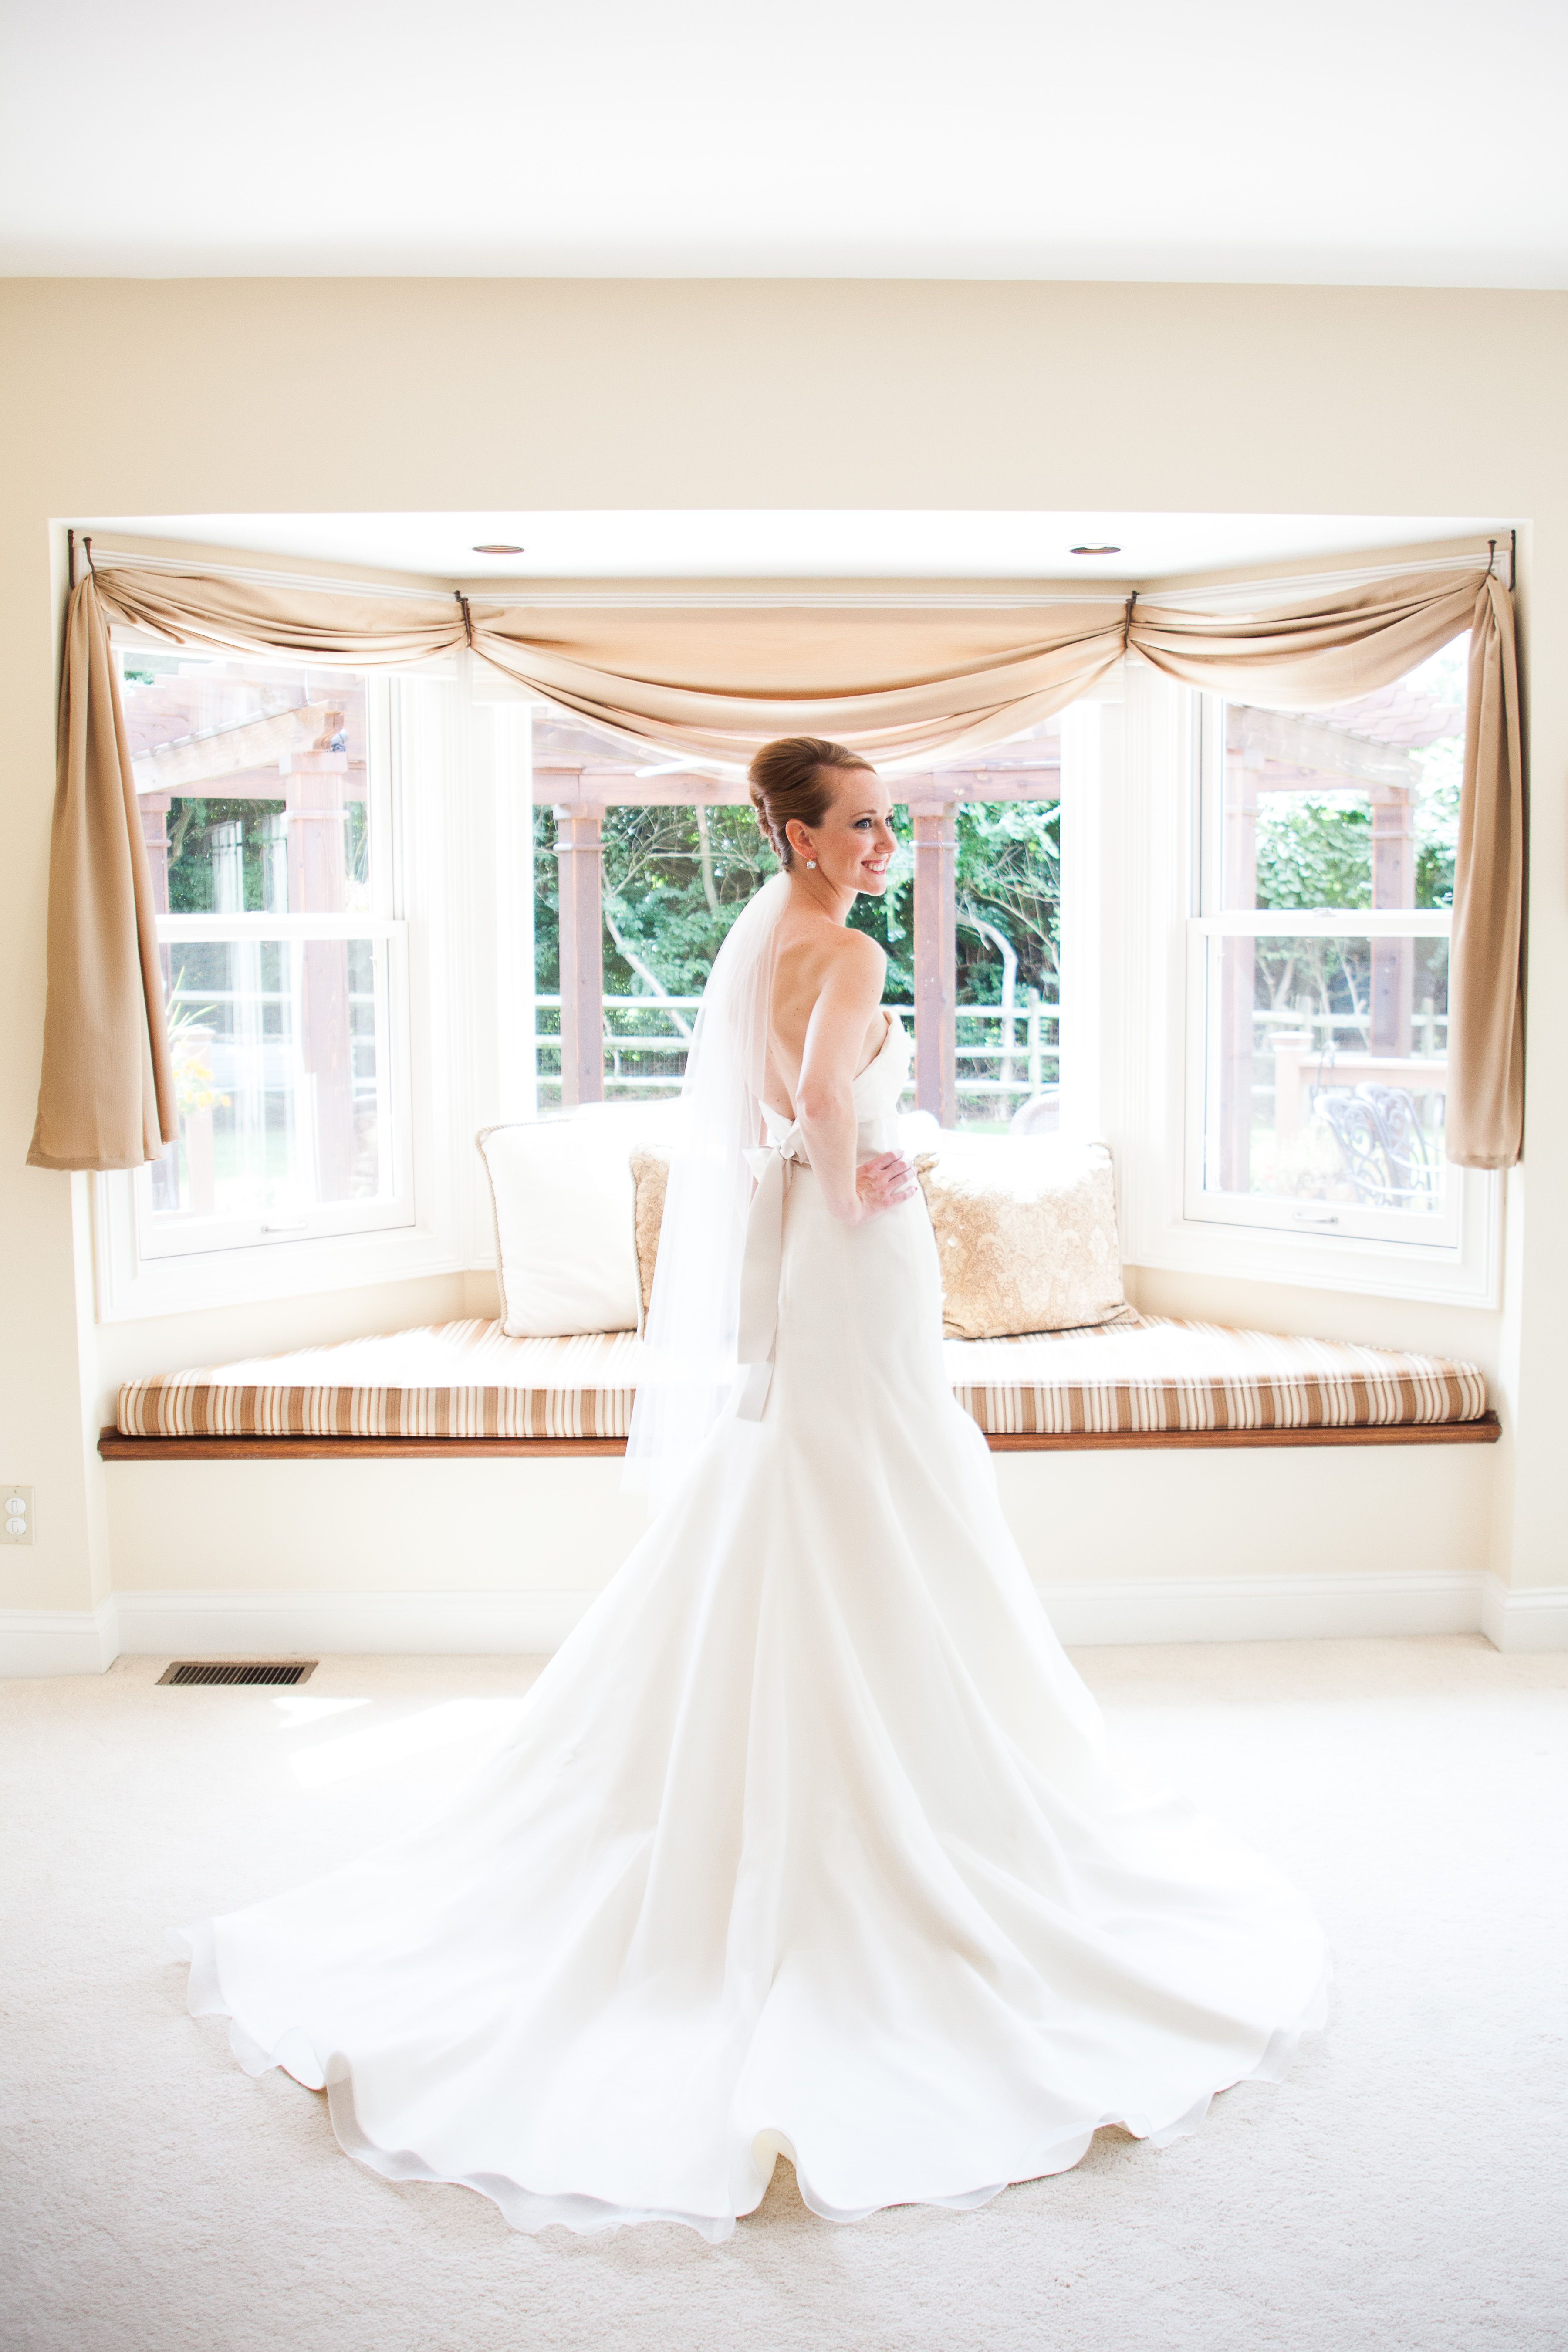 Caitlin Looking Radiant In Her Blush By Hayley Paige Laila Wedding Gown From Hyde